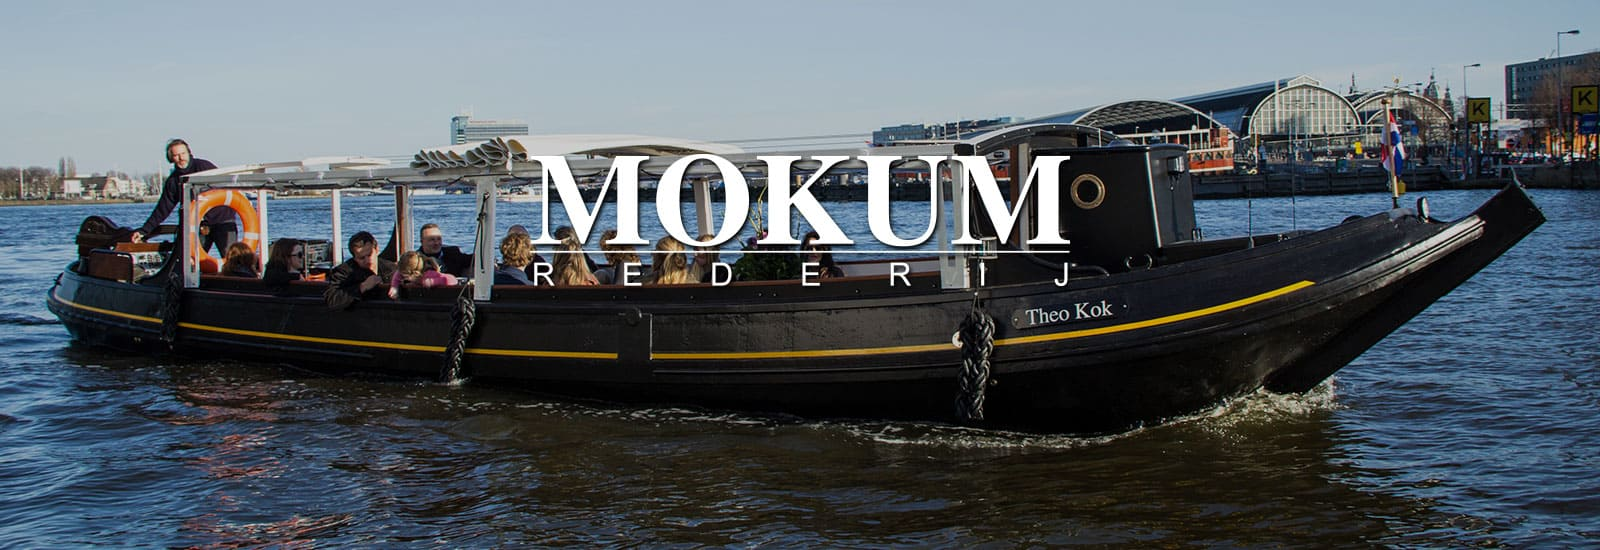 Rederij Mokum is specialist in boottochten in Amsterdam.